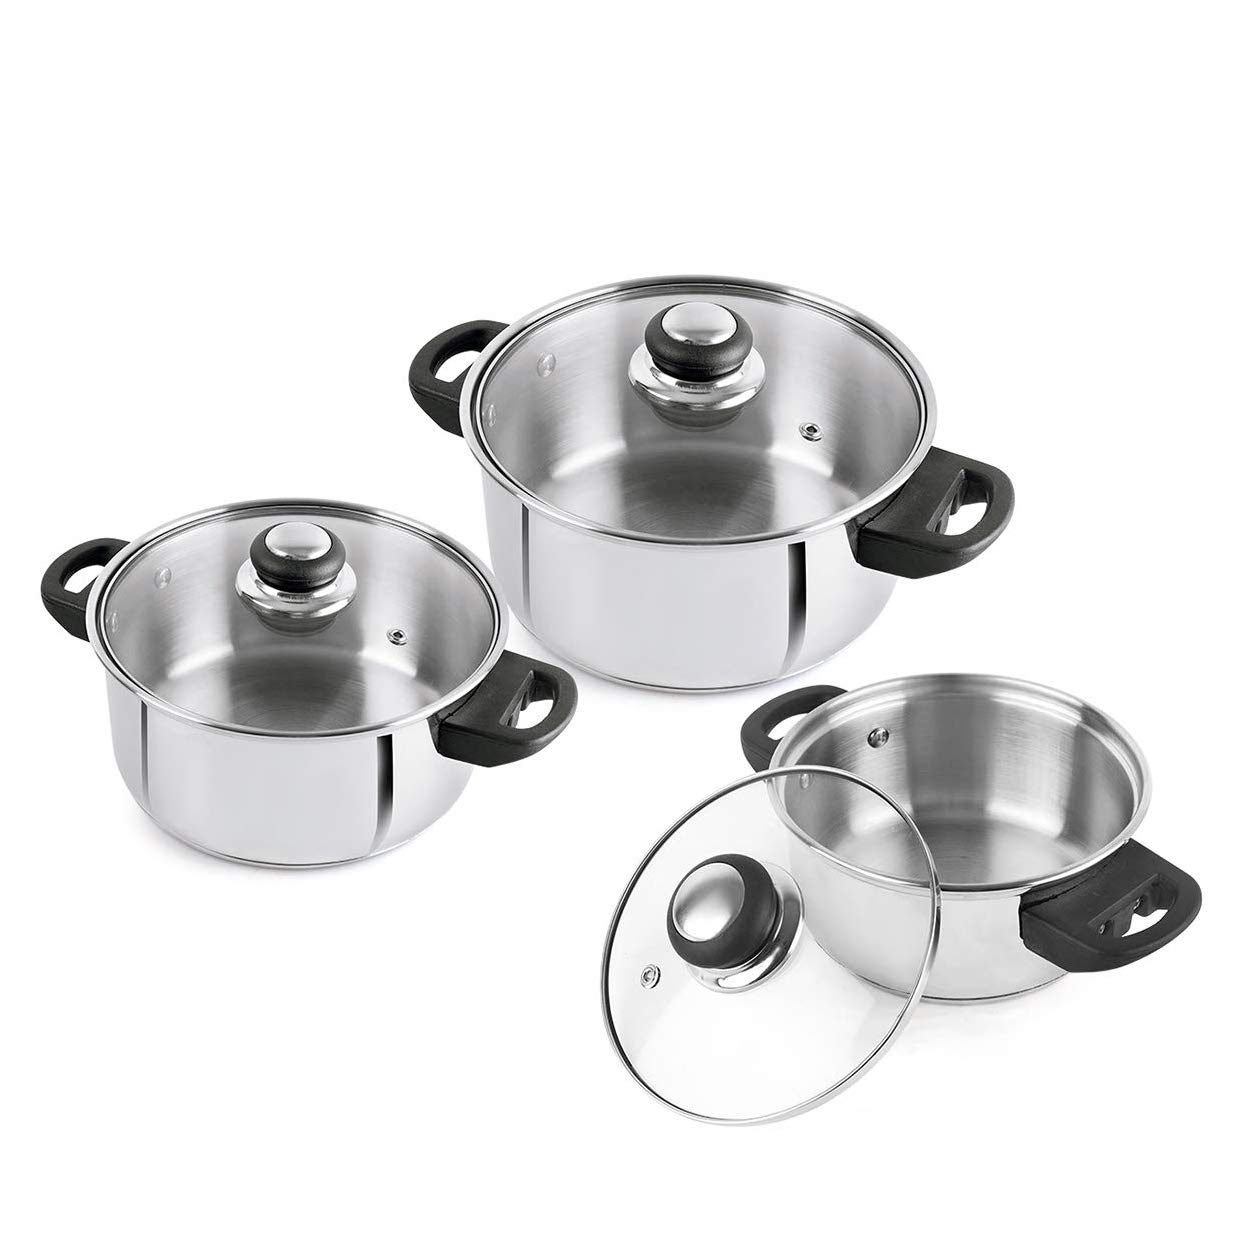 Cello Steelox Induction Compatible Stainless Steel Casserole/Handi Set of 3 with Glass Lid